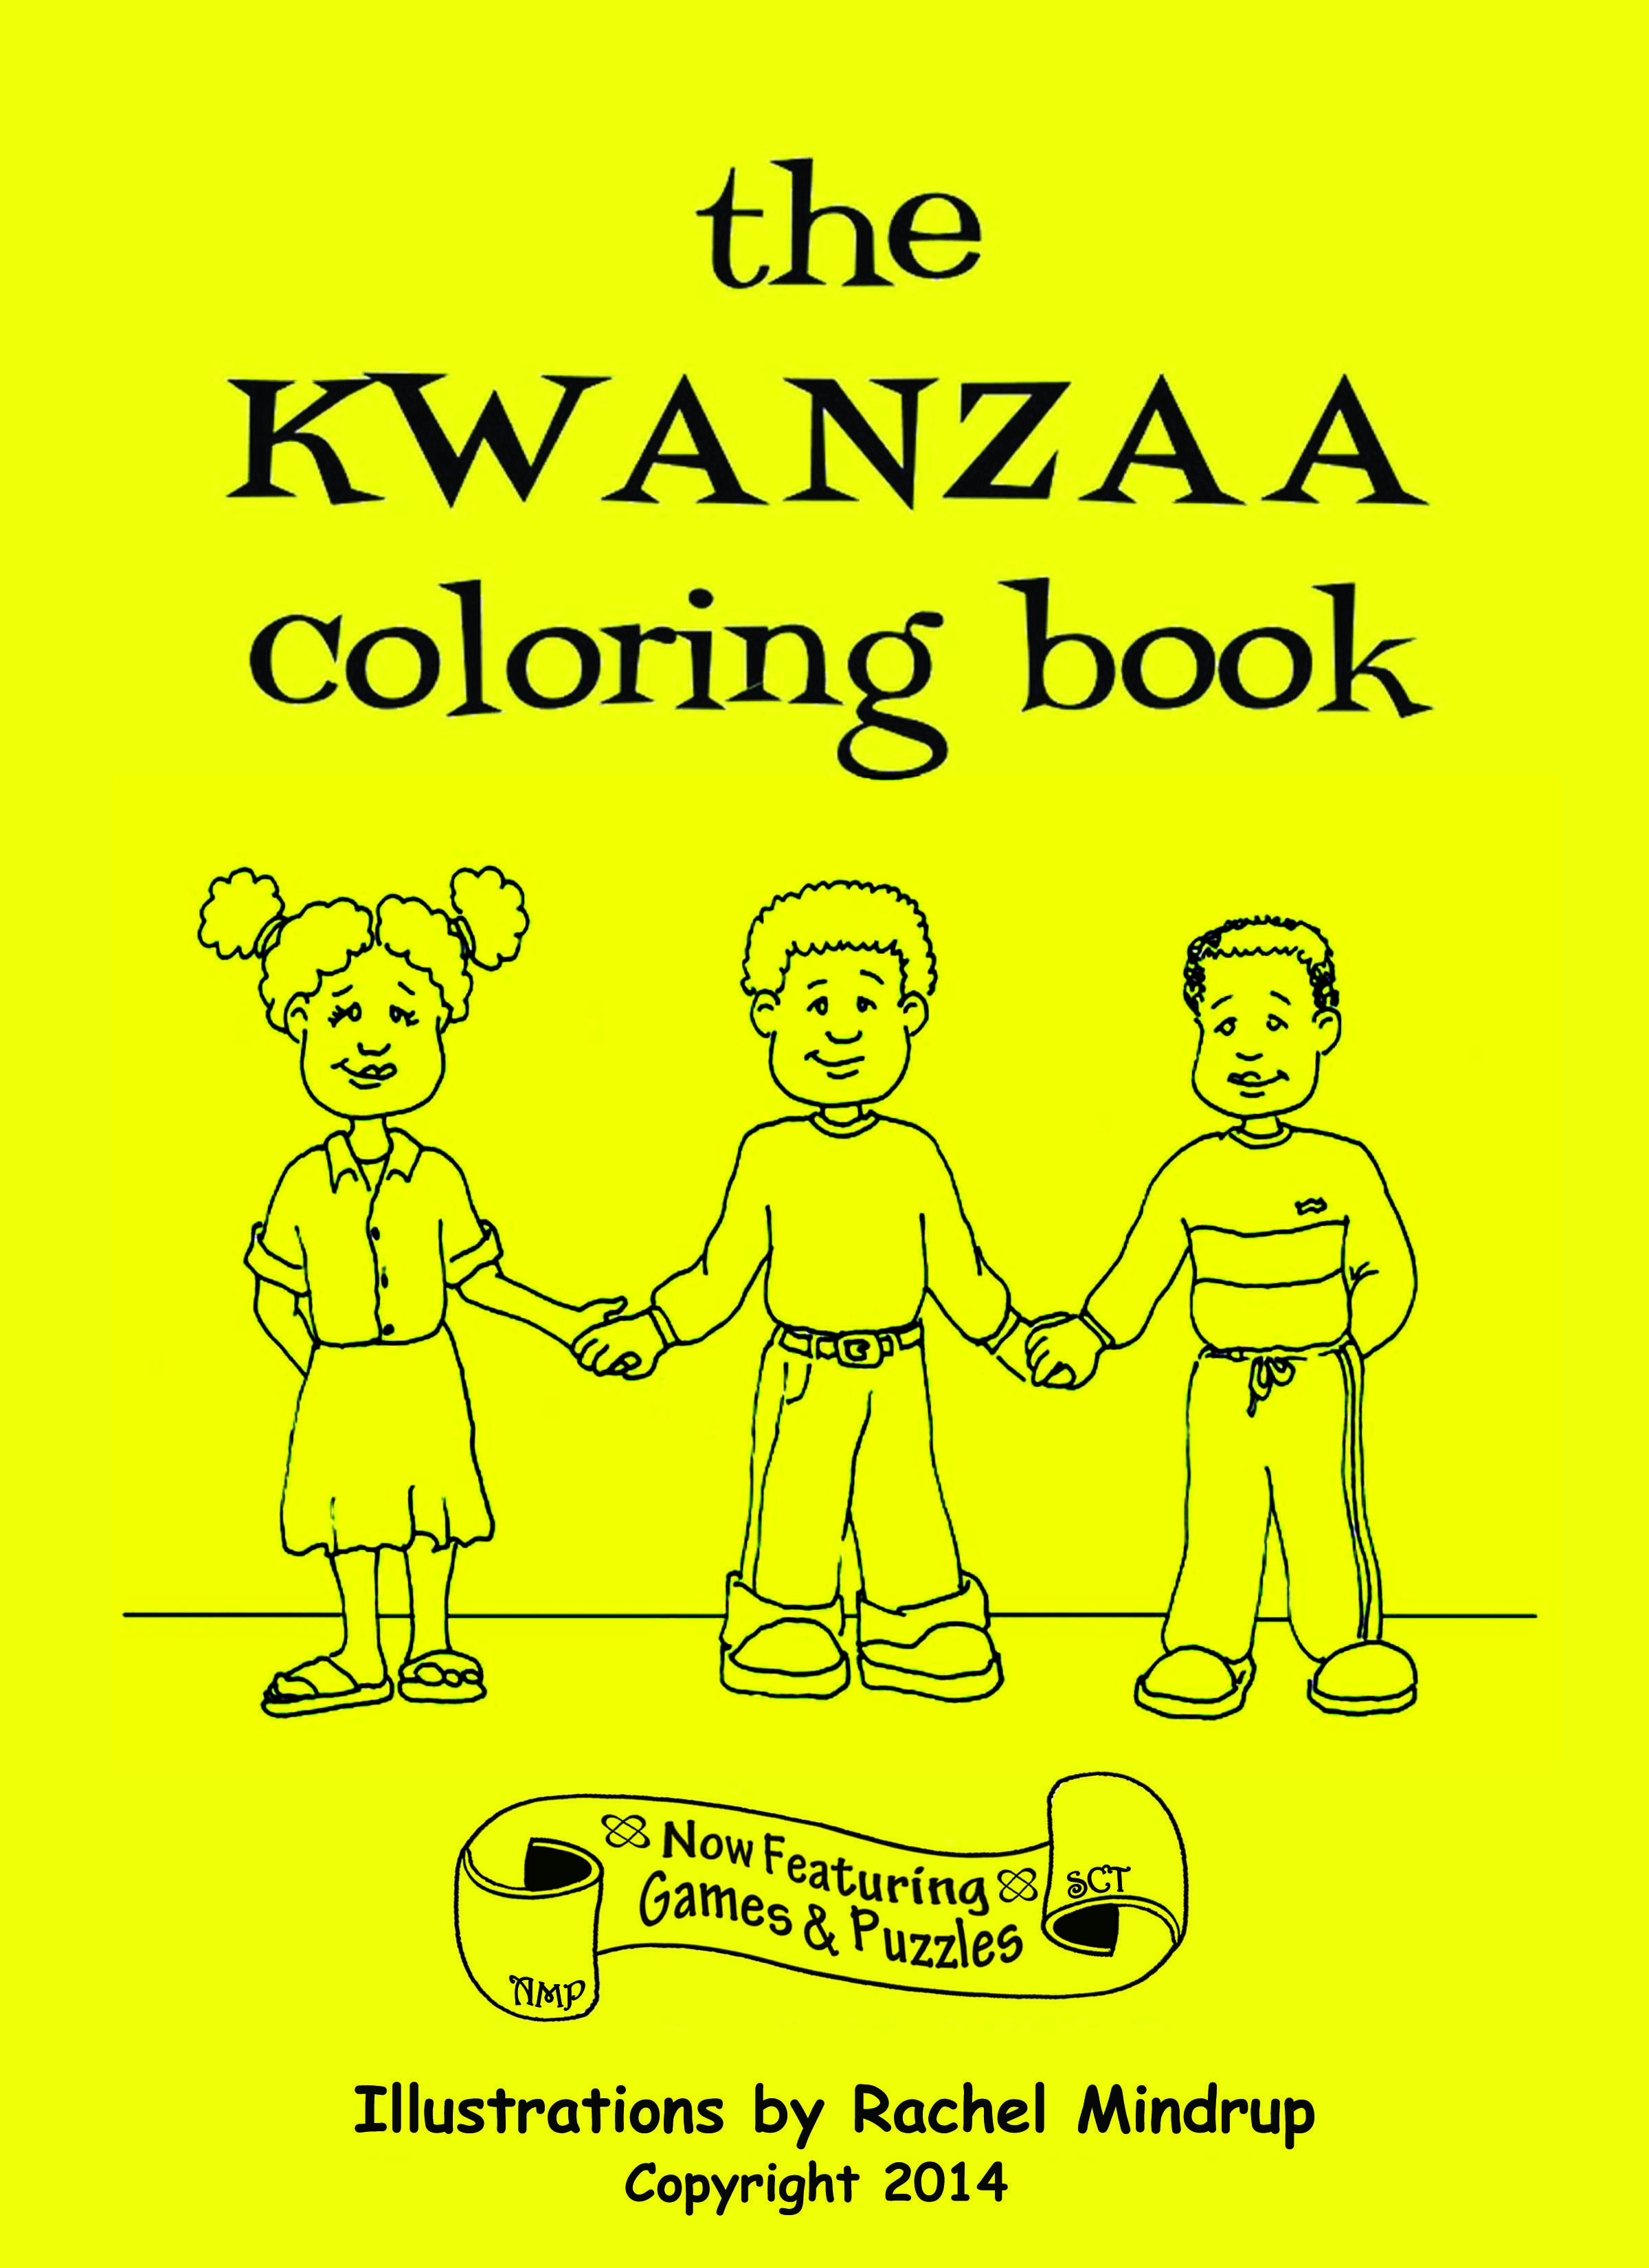 Pin By Steven Thedford On The Kwanzaa Coloring Book With